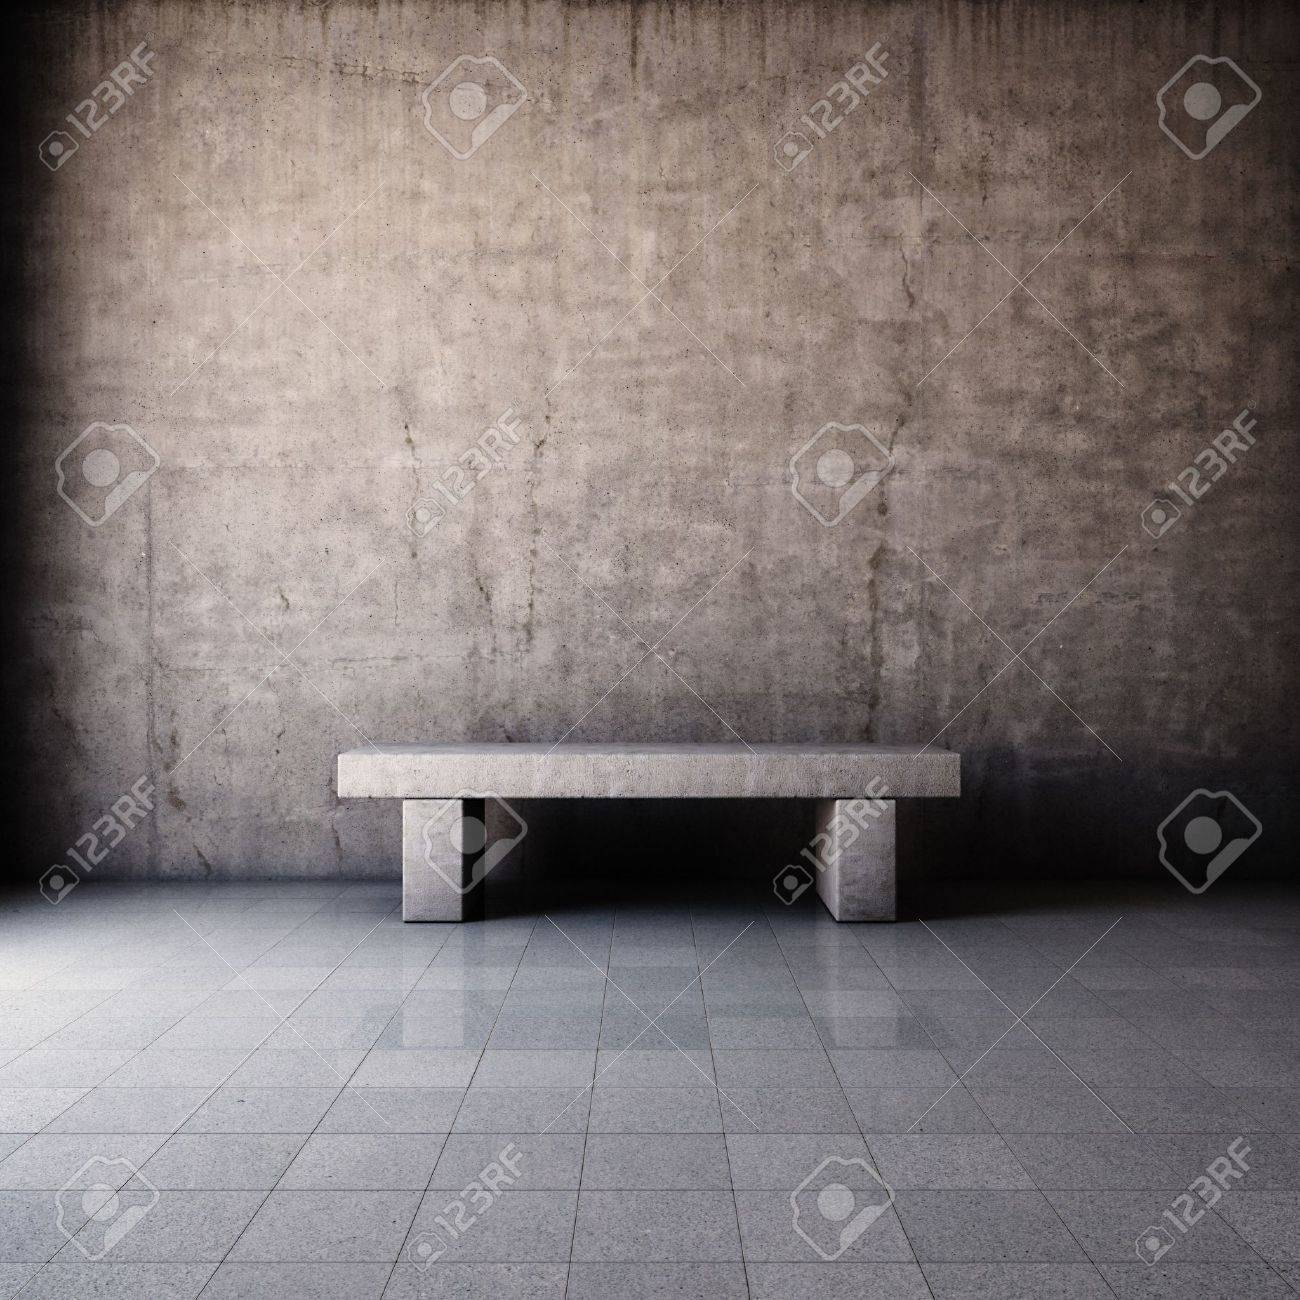 Abstract grunge interior with concrete bench Stock Photo - 16430830